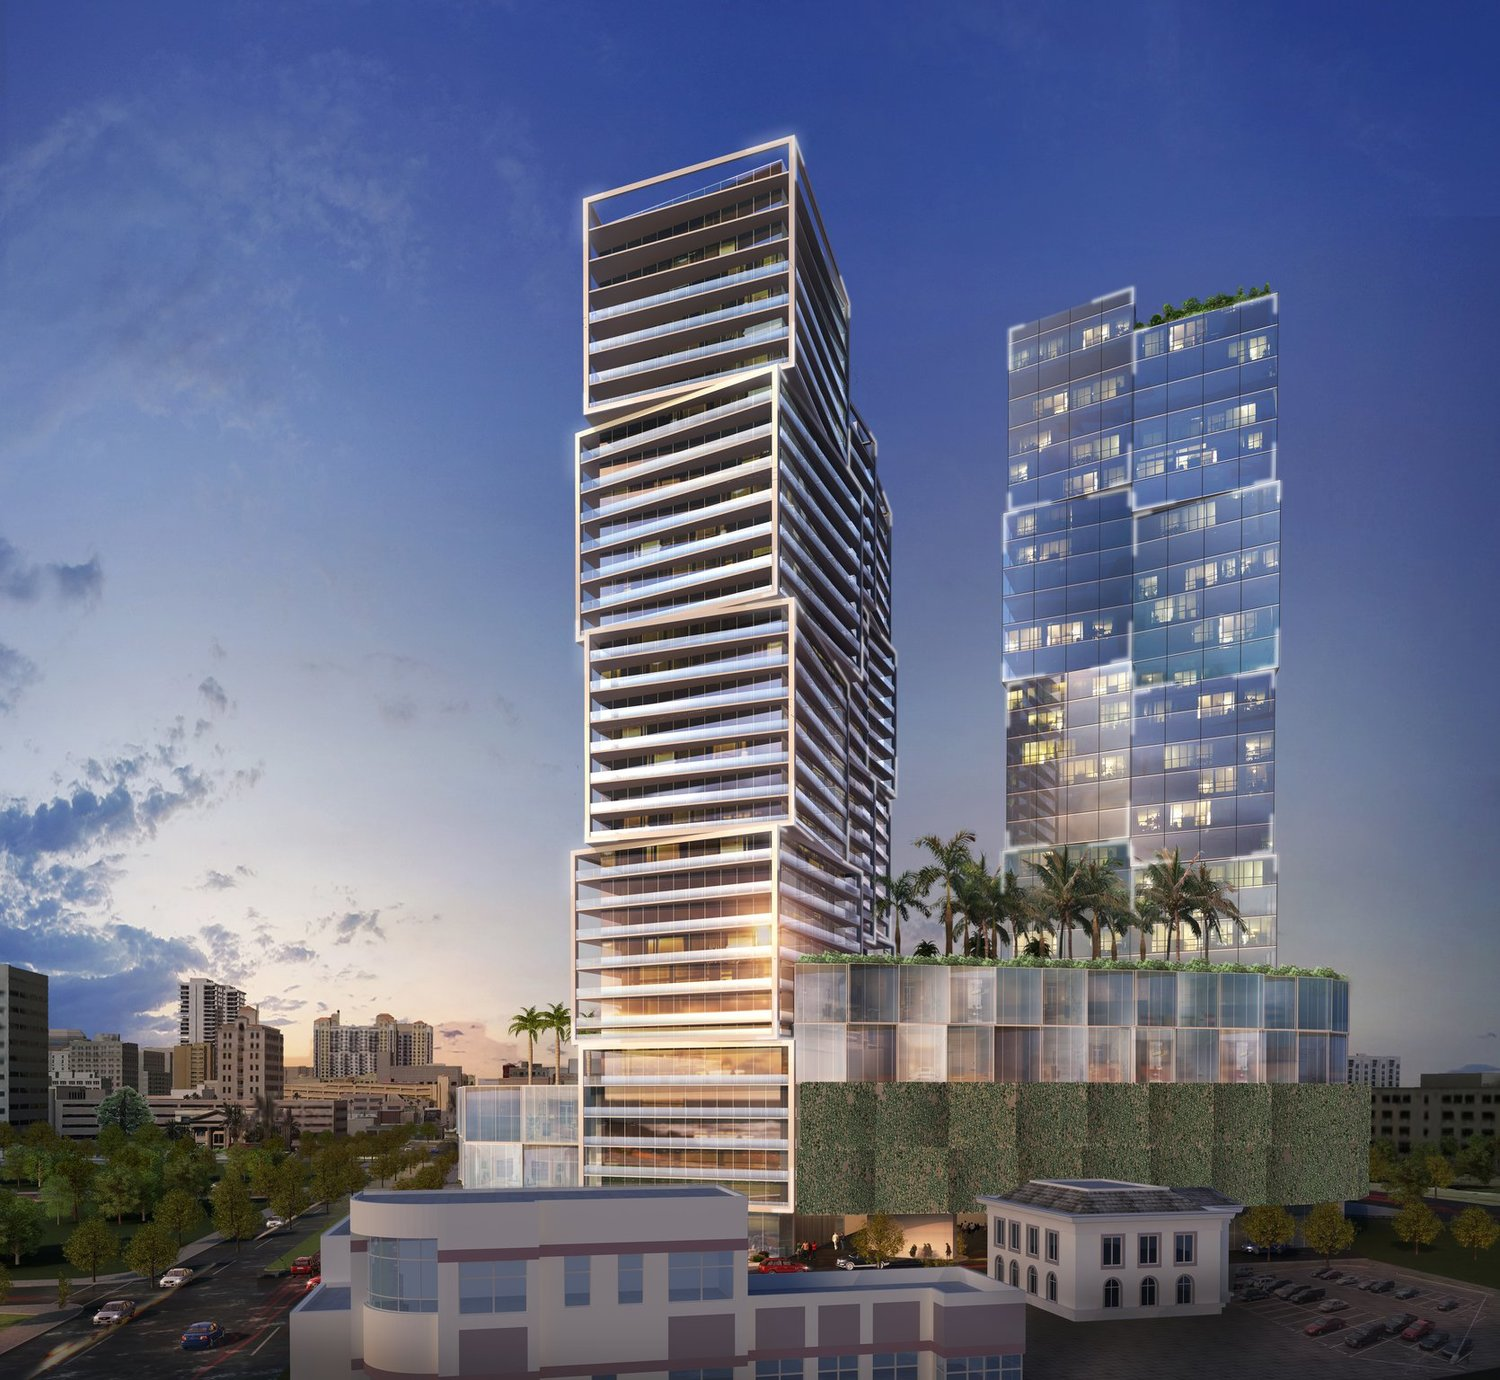 Artist's rendering of One West Palm, proposed for 550 N. Quadrille Blvd. in downtown West Palm Beach. (Contributed)